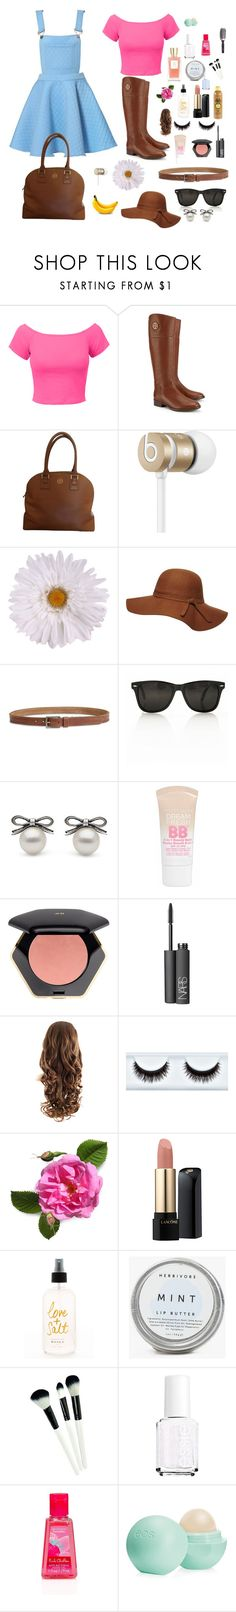 """A Day in the Park"" by kyra-rose-freeman ❤ liked on Polyvore featuring LE3NO, Tory Burch, Beats by Dr. Dre, Dorothy Perkins, Lucky Brand, Maybelline, H&M, NARS Cosmetics, Sun Bum and Lancôme"